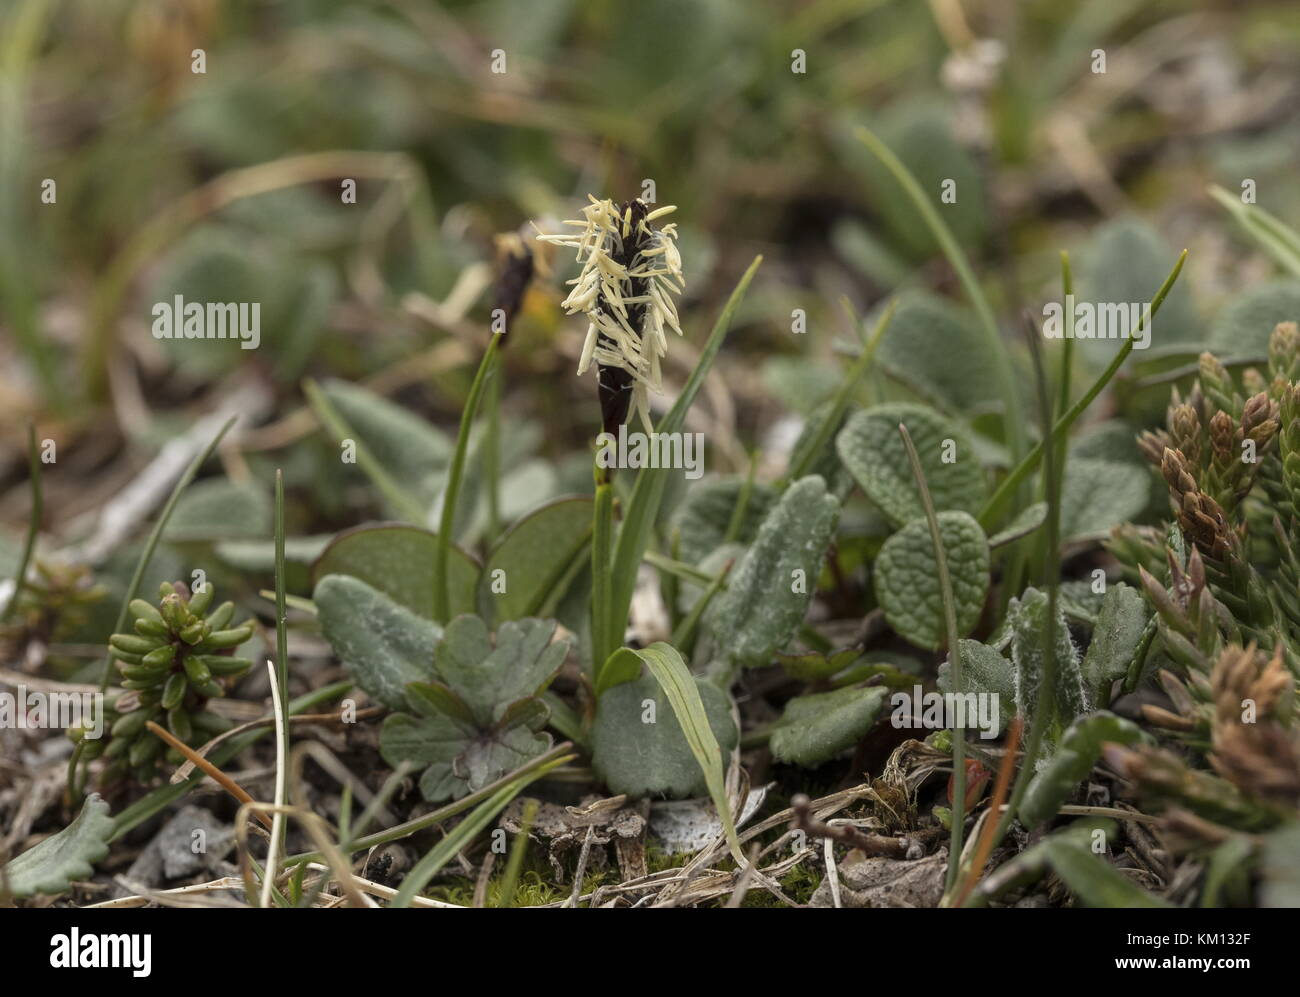 Canadian single-spike sedge, Carex scirpoidea in flower in tundra grassland, Newfoundland. - Stock Image